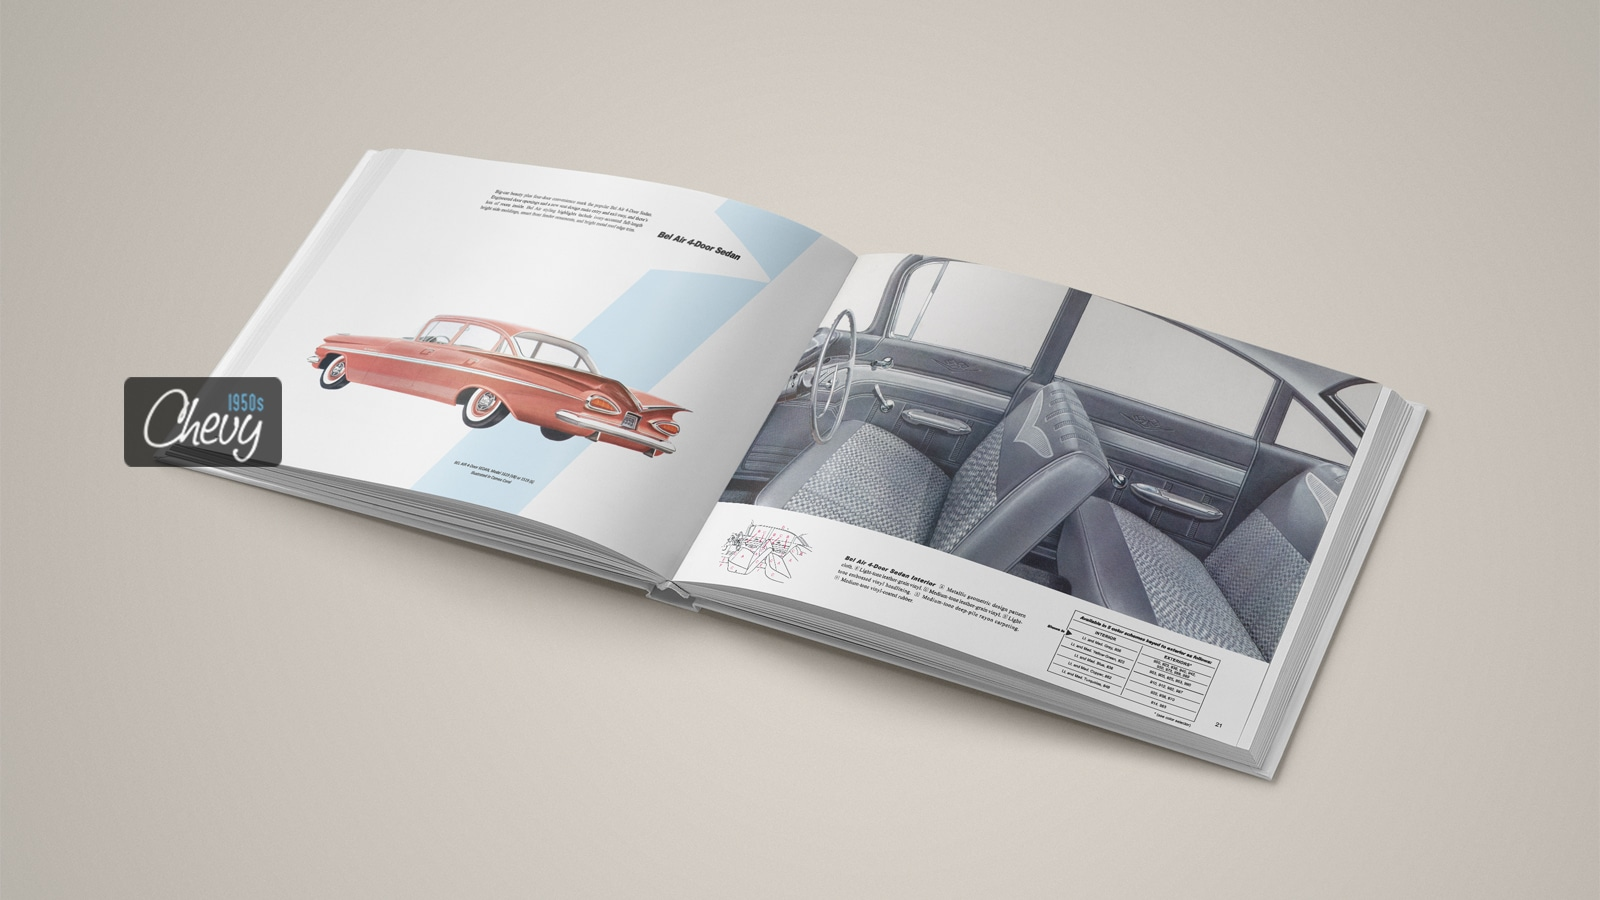 1959 Chevrolet Showroom Album Book 04